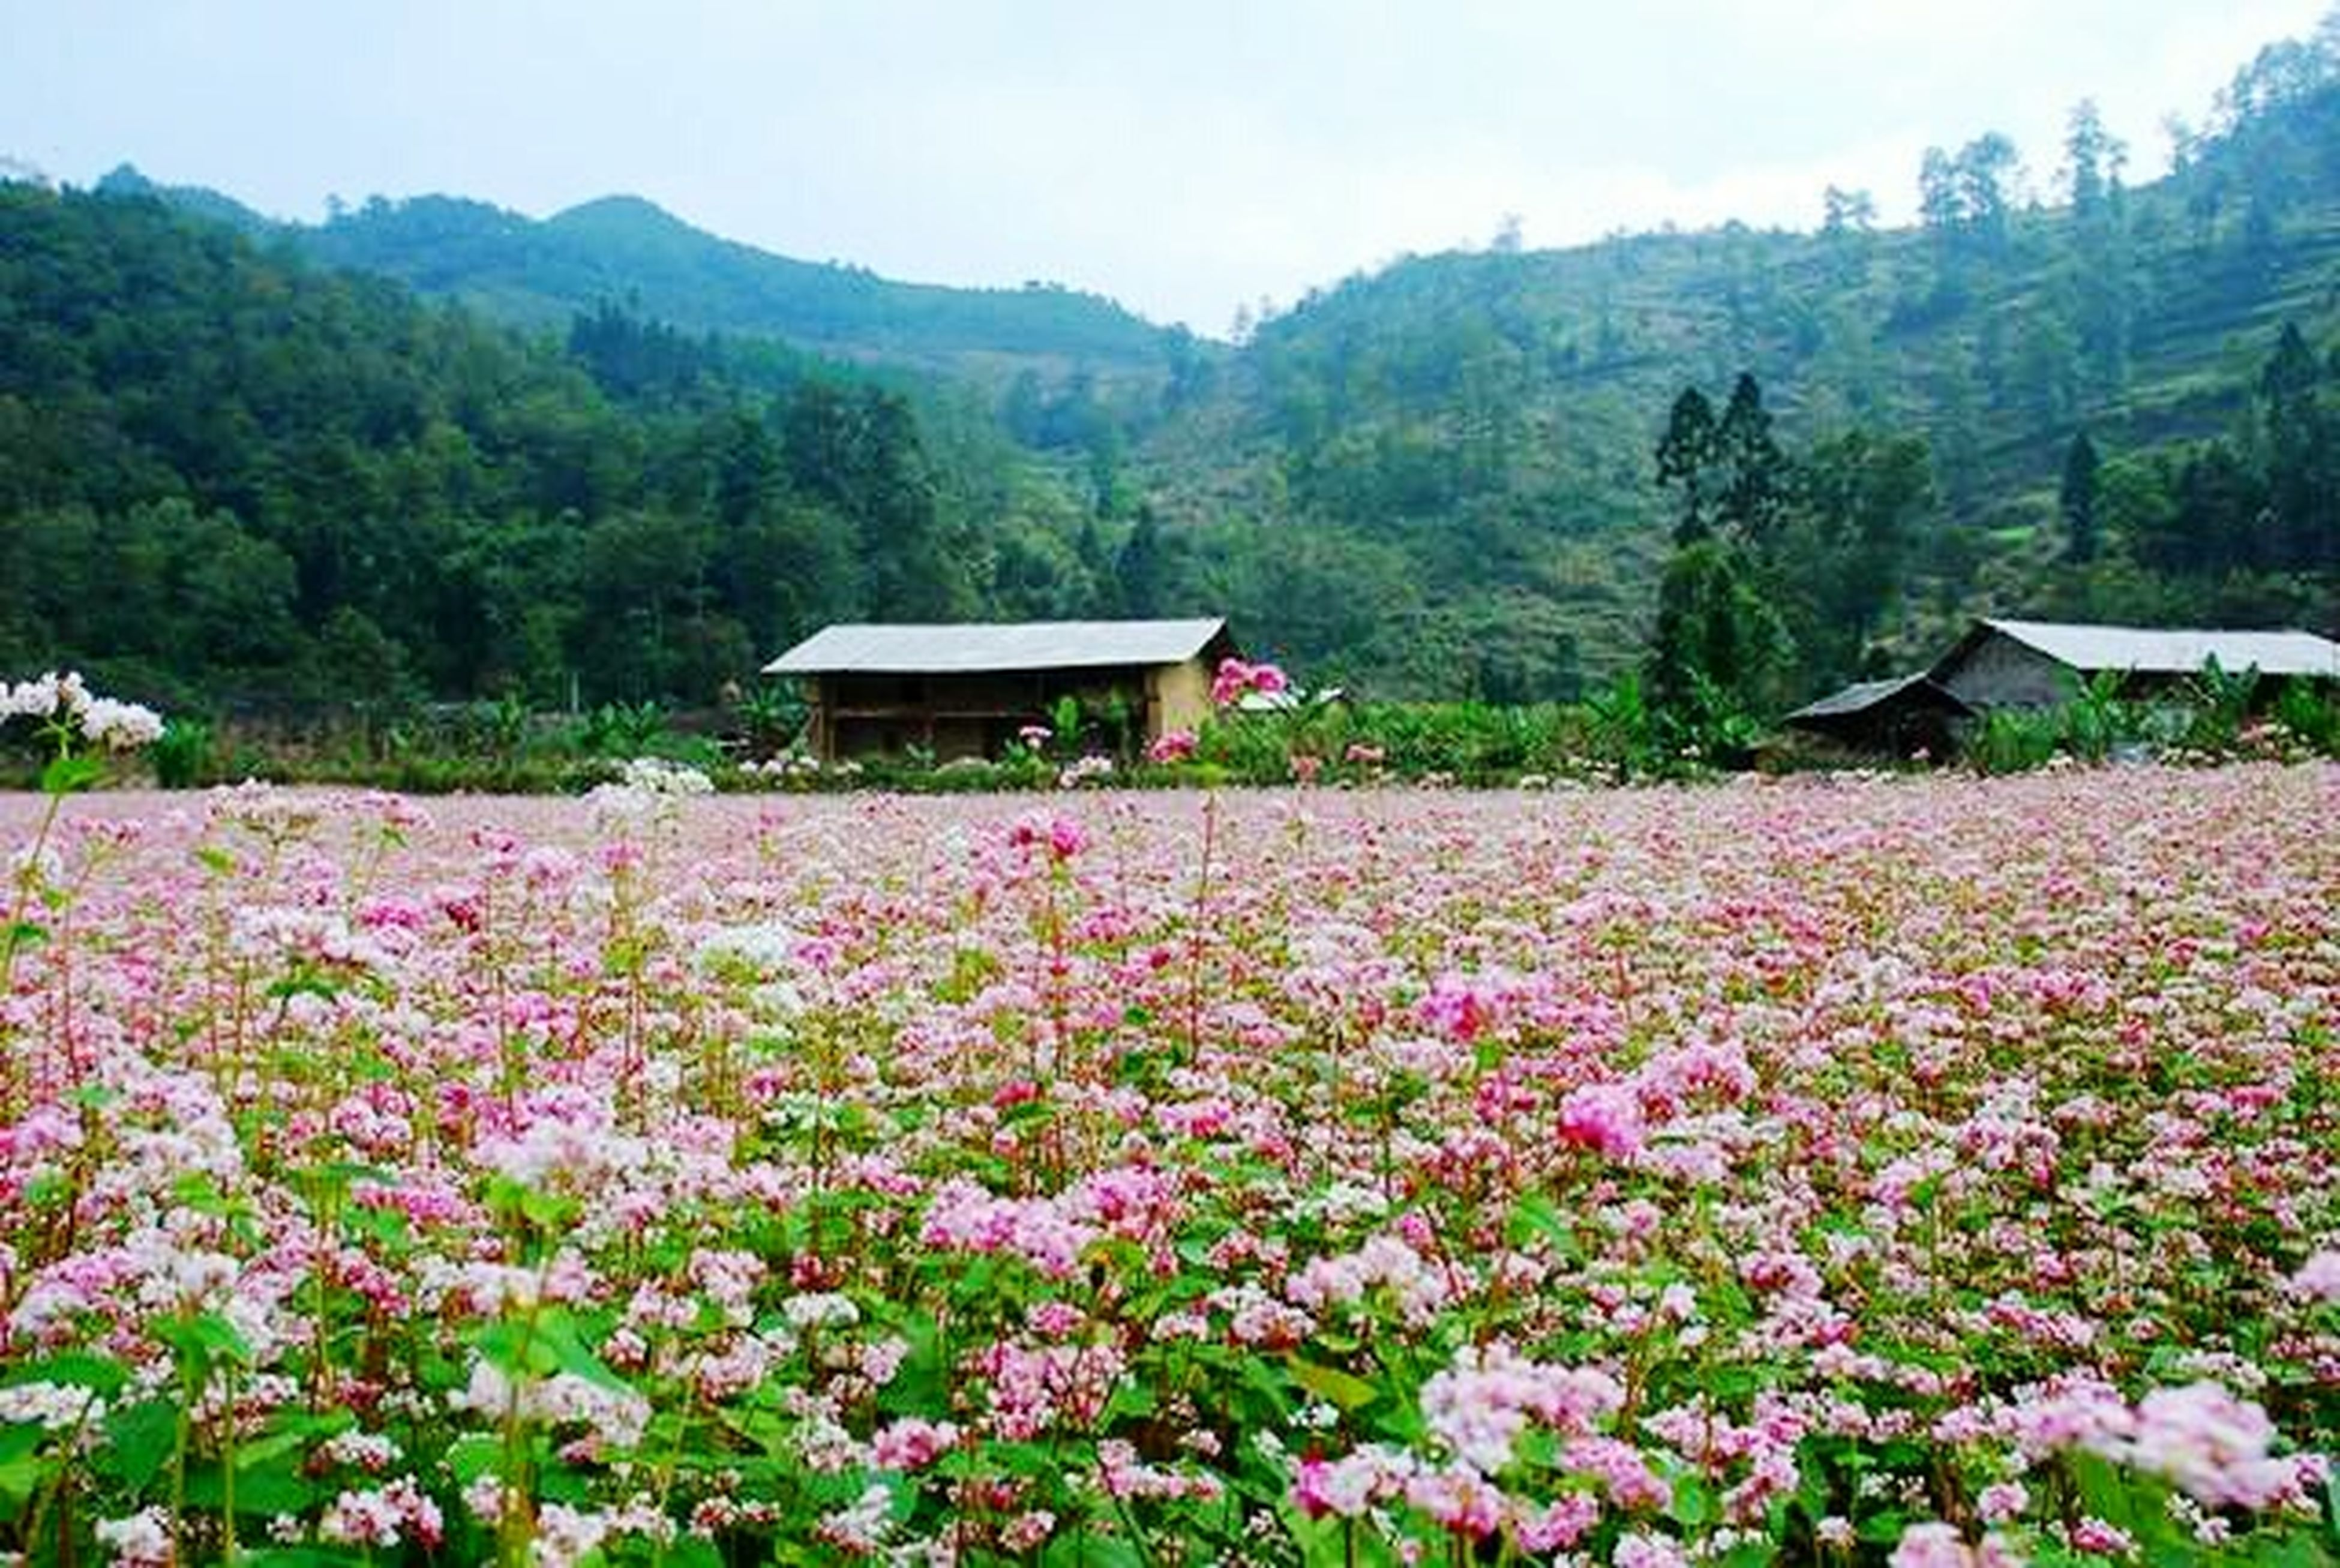 flower, mountain, beauty in nature, tree, growth, tranquil scene, nature, scenics, mountain range, tranquility, landscape, plant, house, freshness, sky, hill, day, idyllic, outdoors, non-urban scene